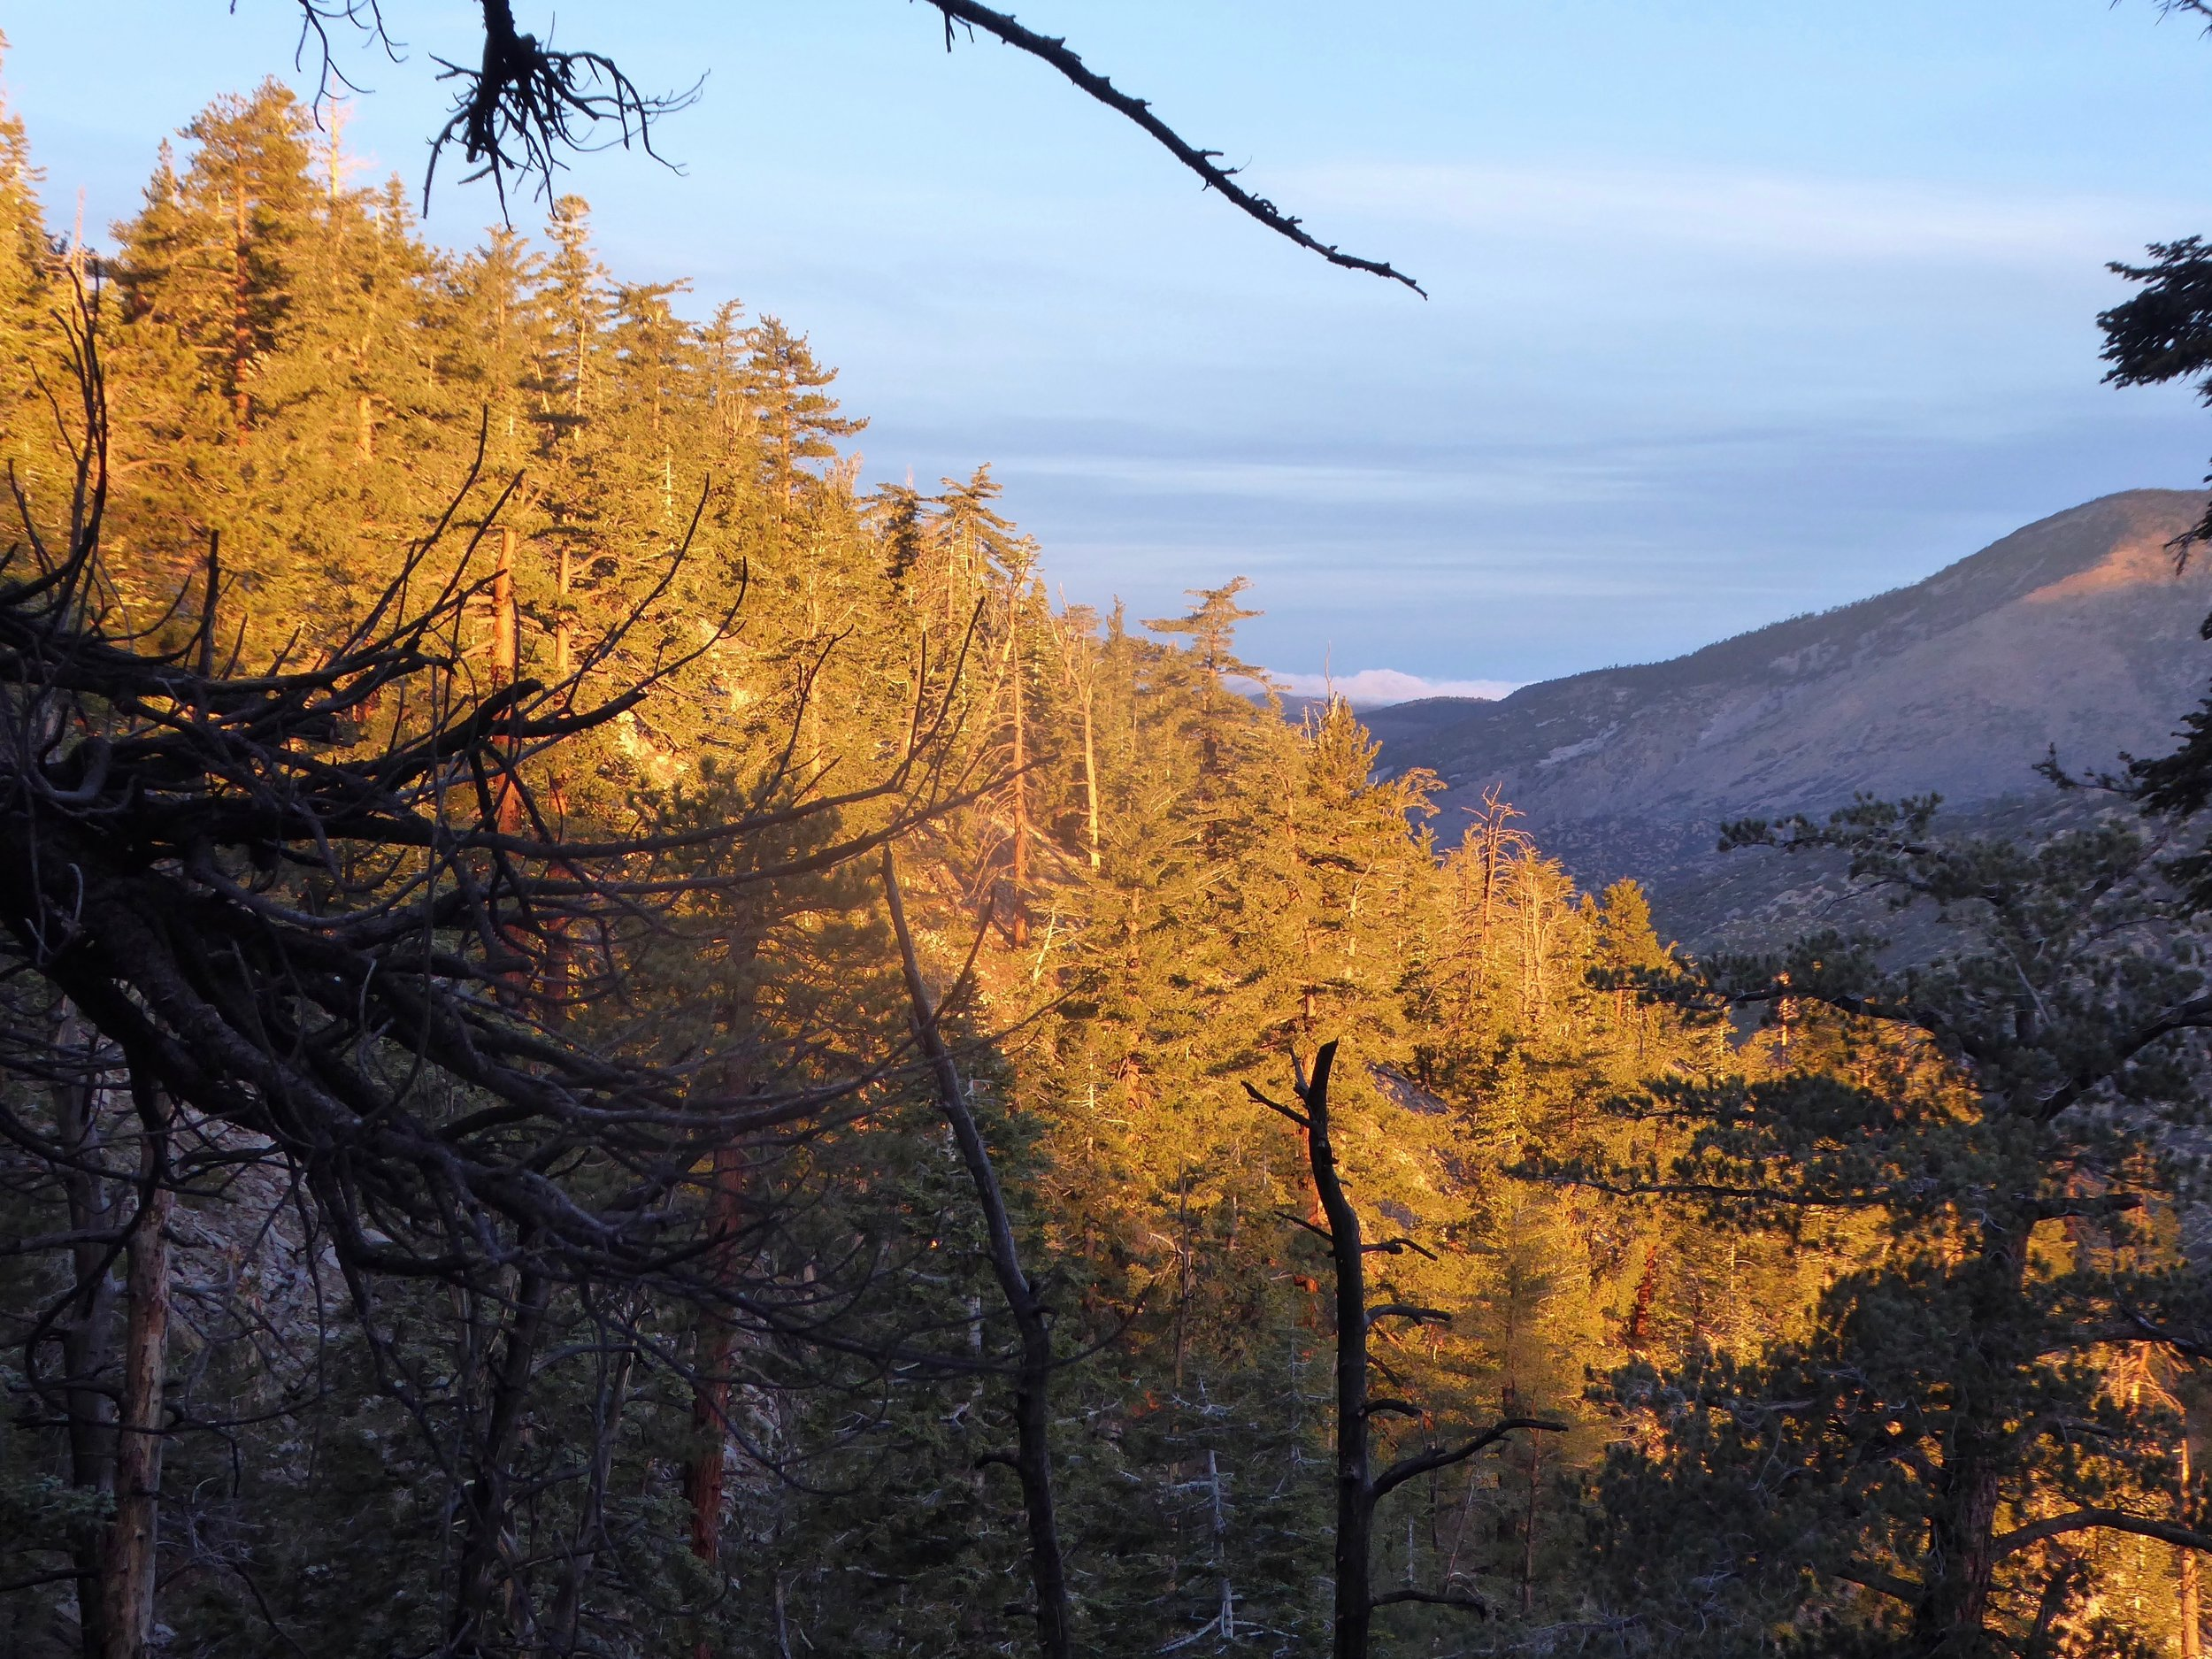 The early morning light was spectacular as well as the fresh snow on the mountain in the distance.